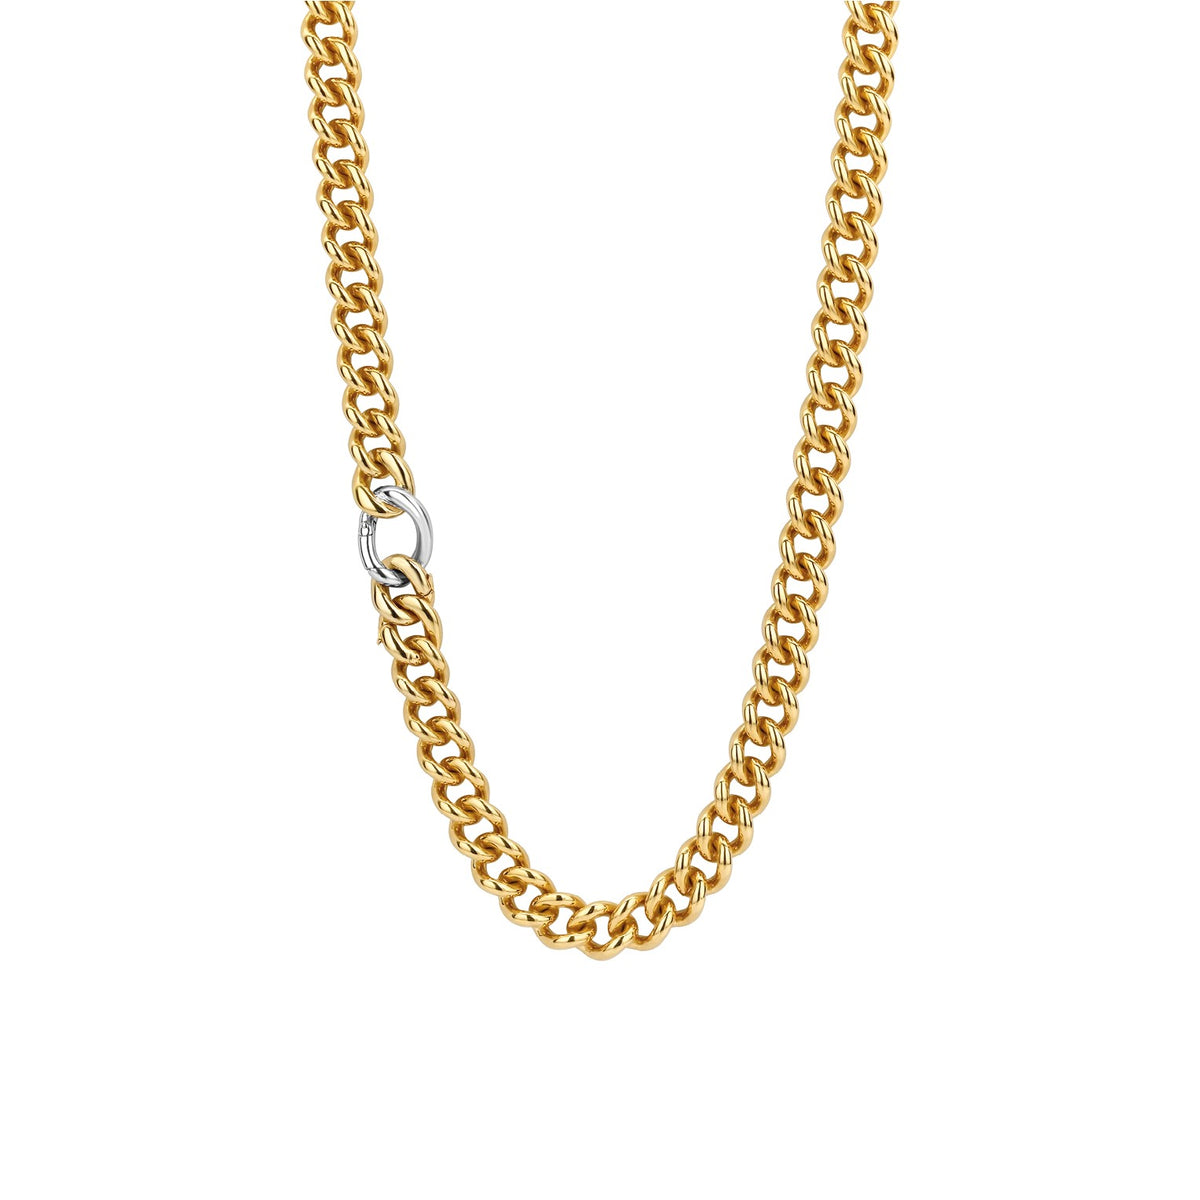 TI SENTO Sterling Silver Gold Tone Heavy Link Necklace